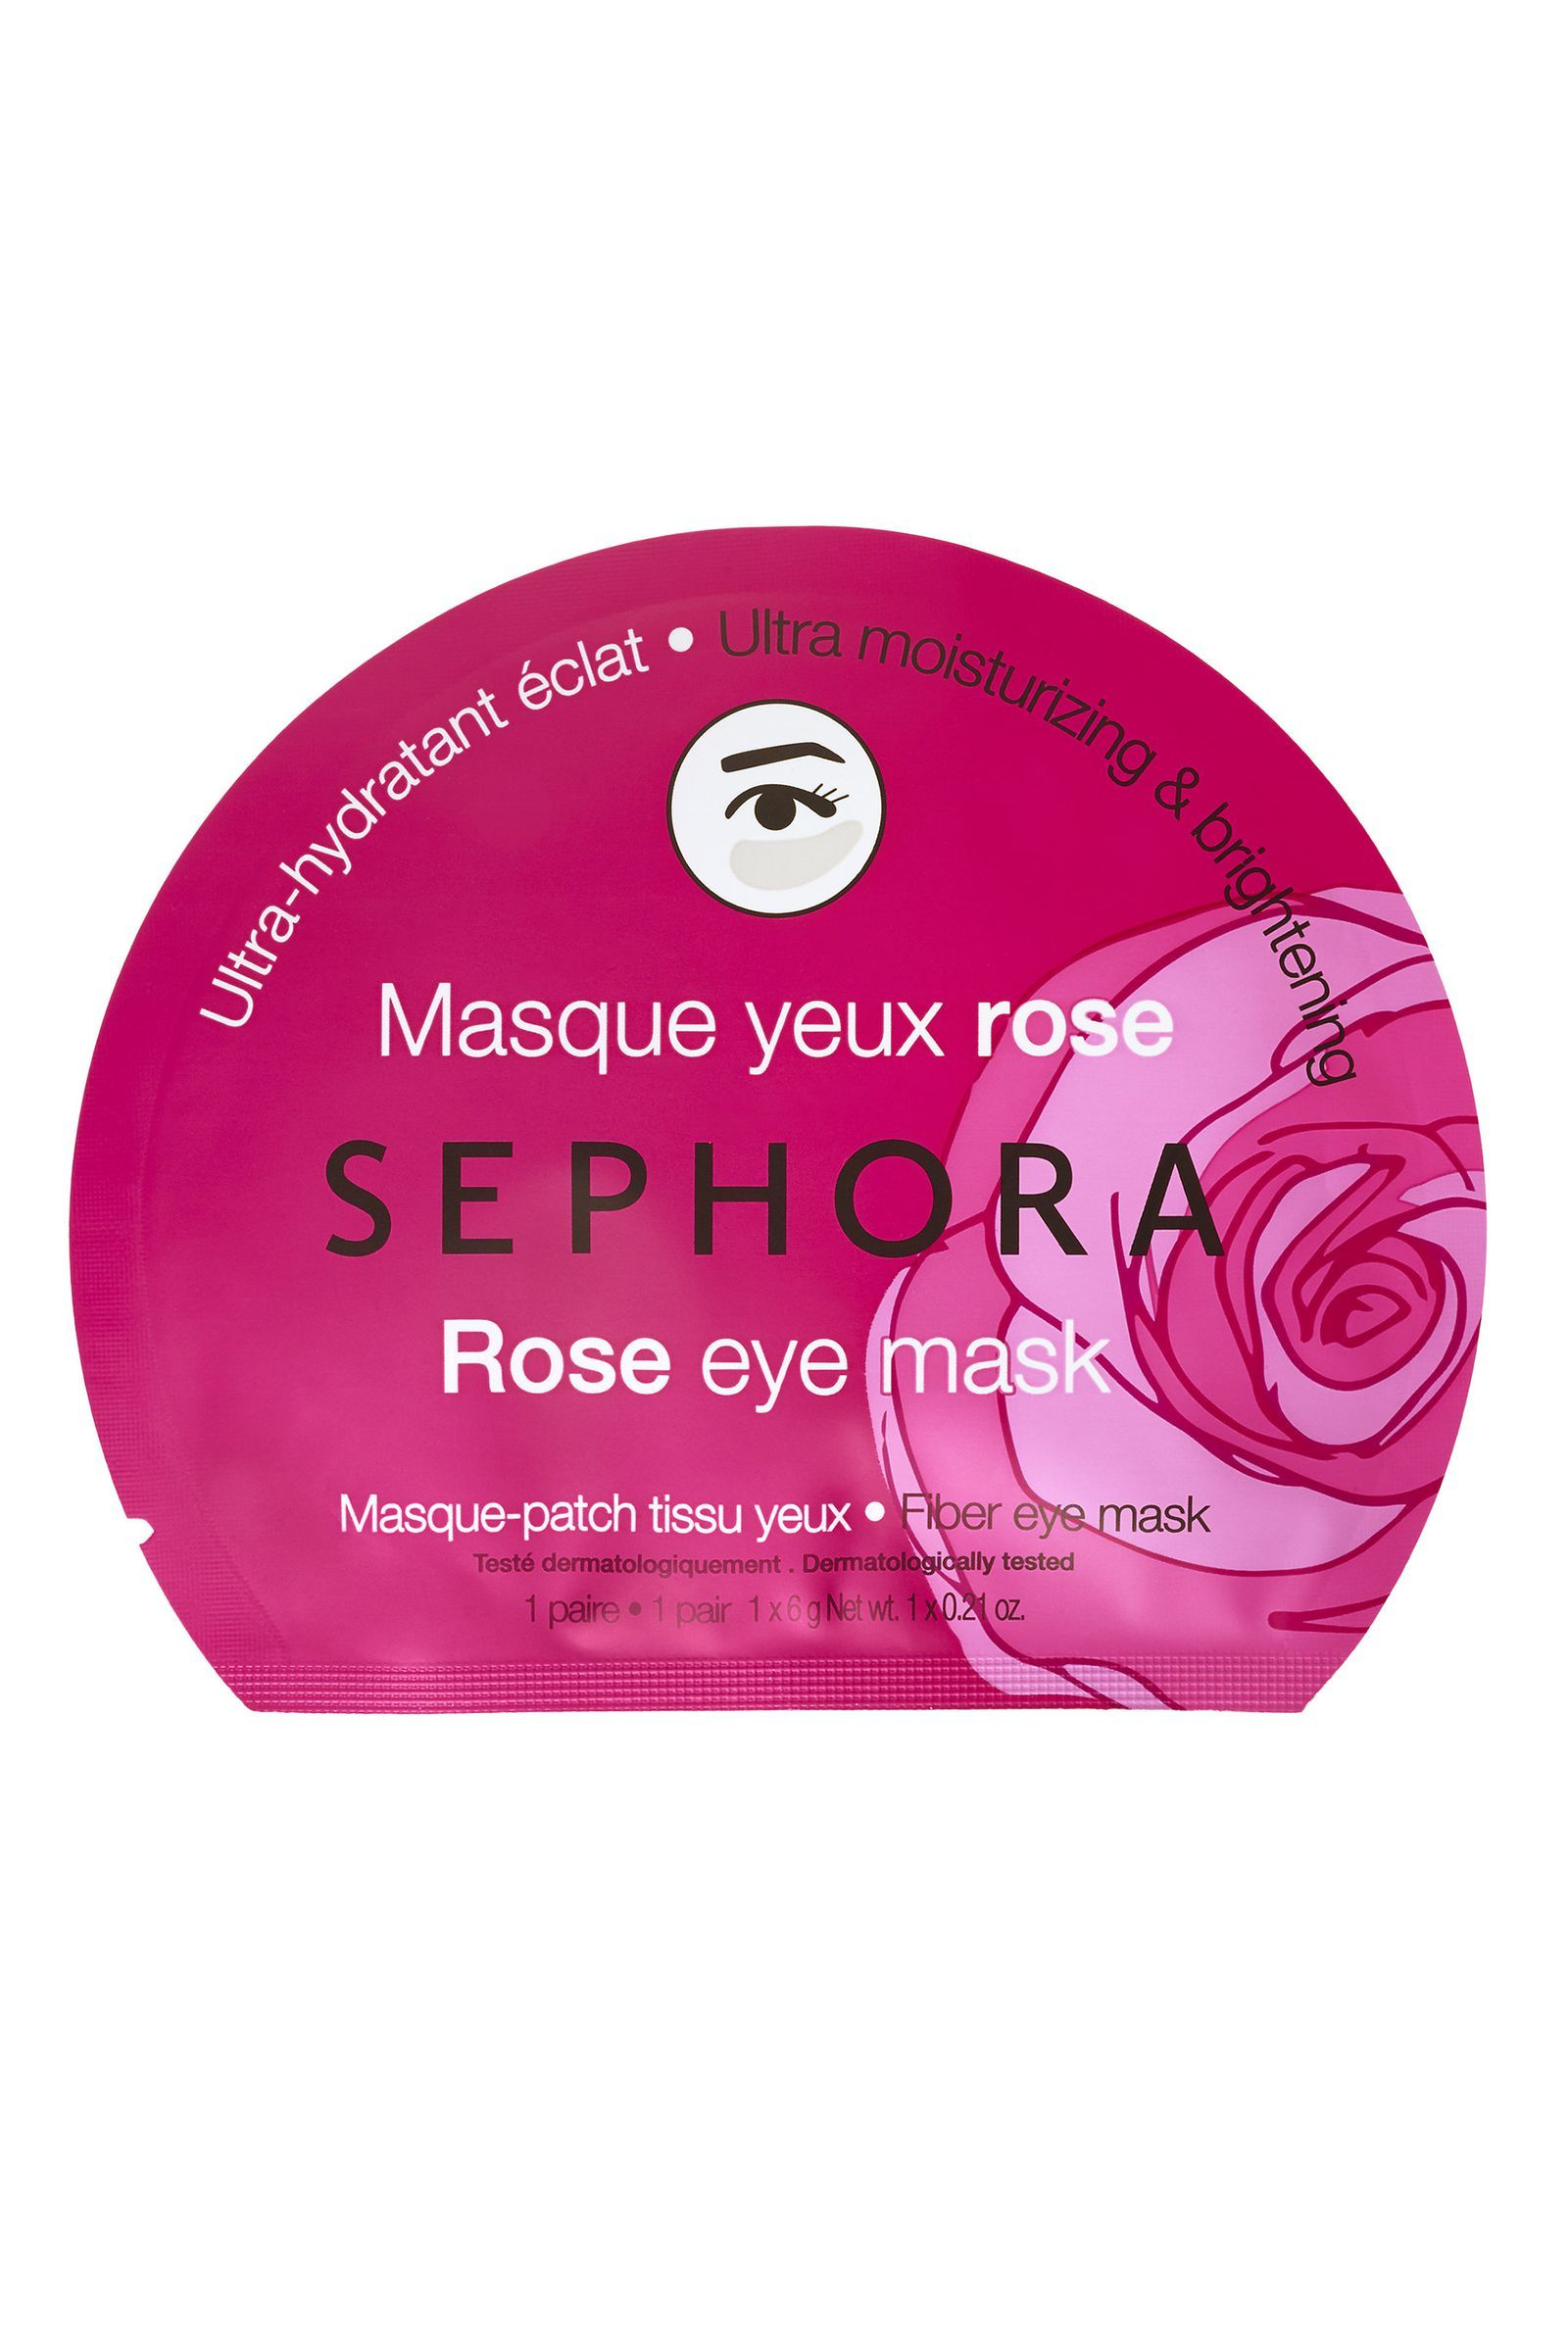 The Best Under Eye Masks for Puffiness, Dark Circles, and